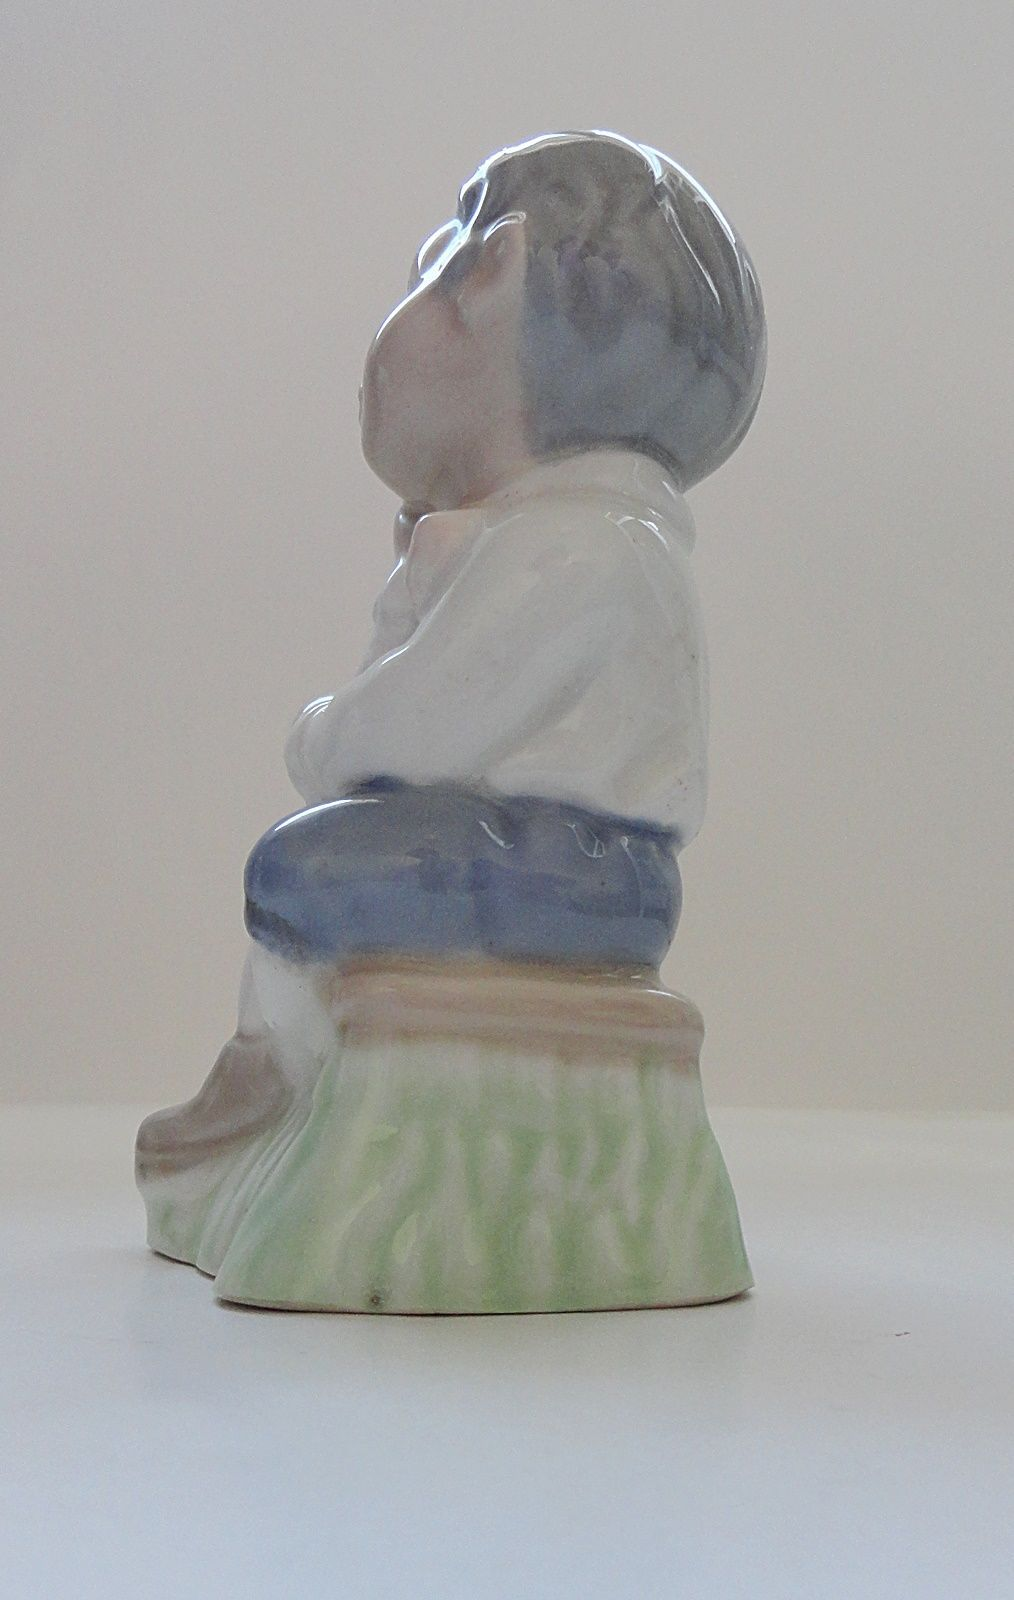 Tengra Hand Made in Valencia Spain Porcelain Boy and Girl Figurines